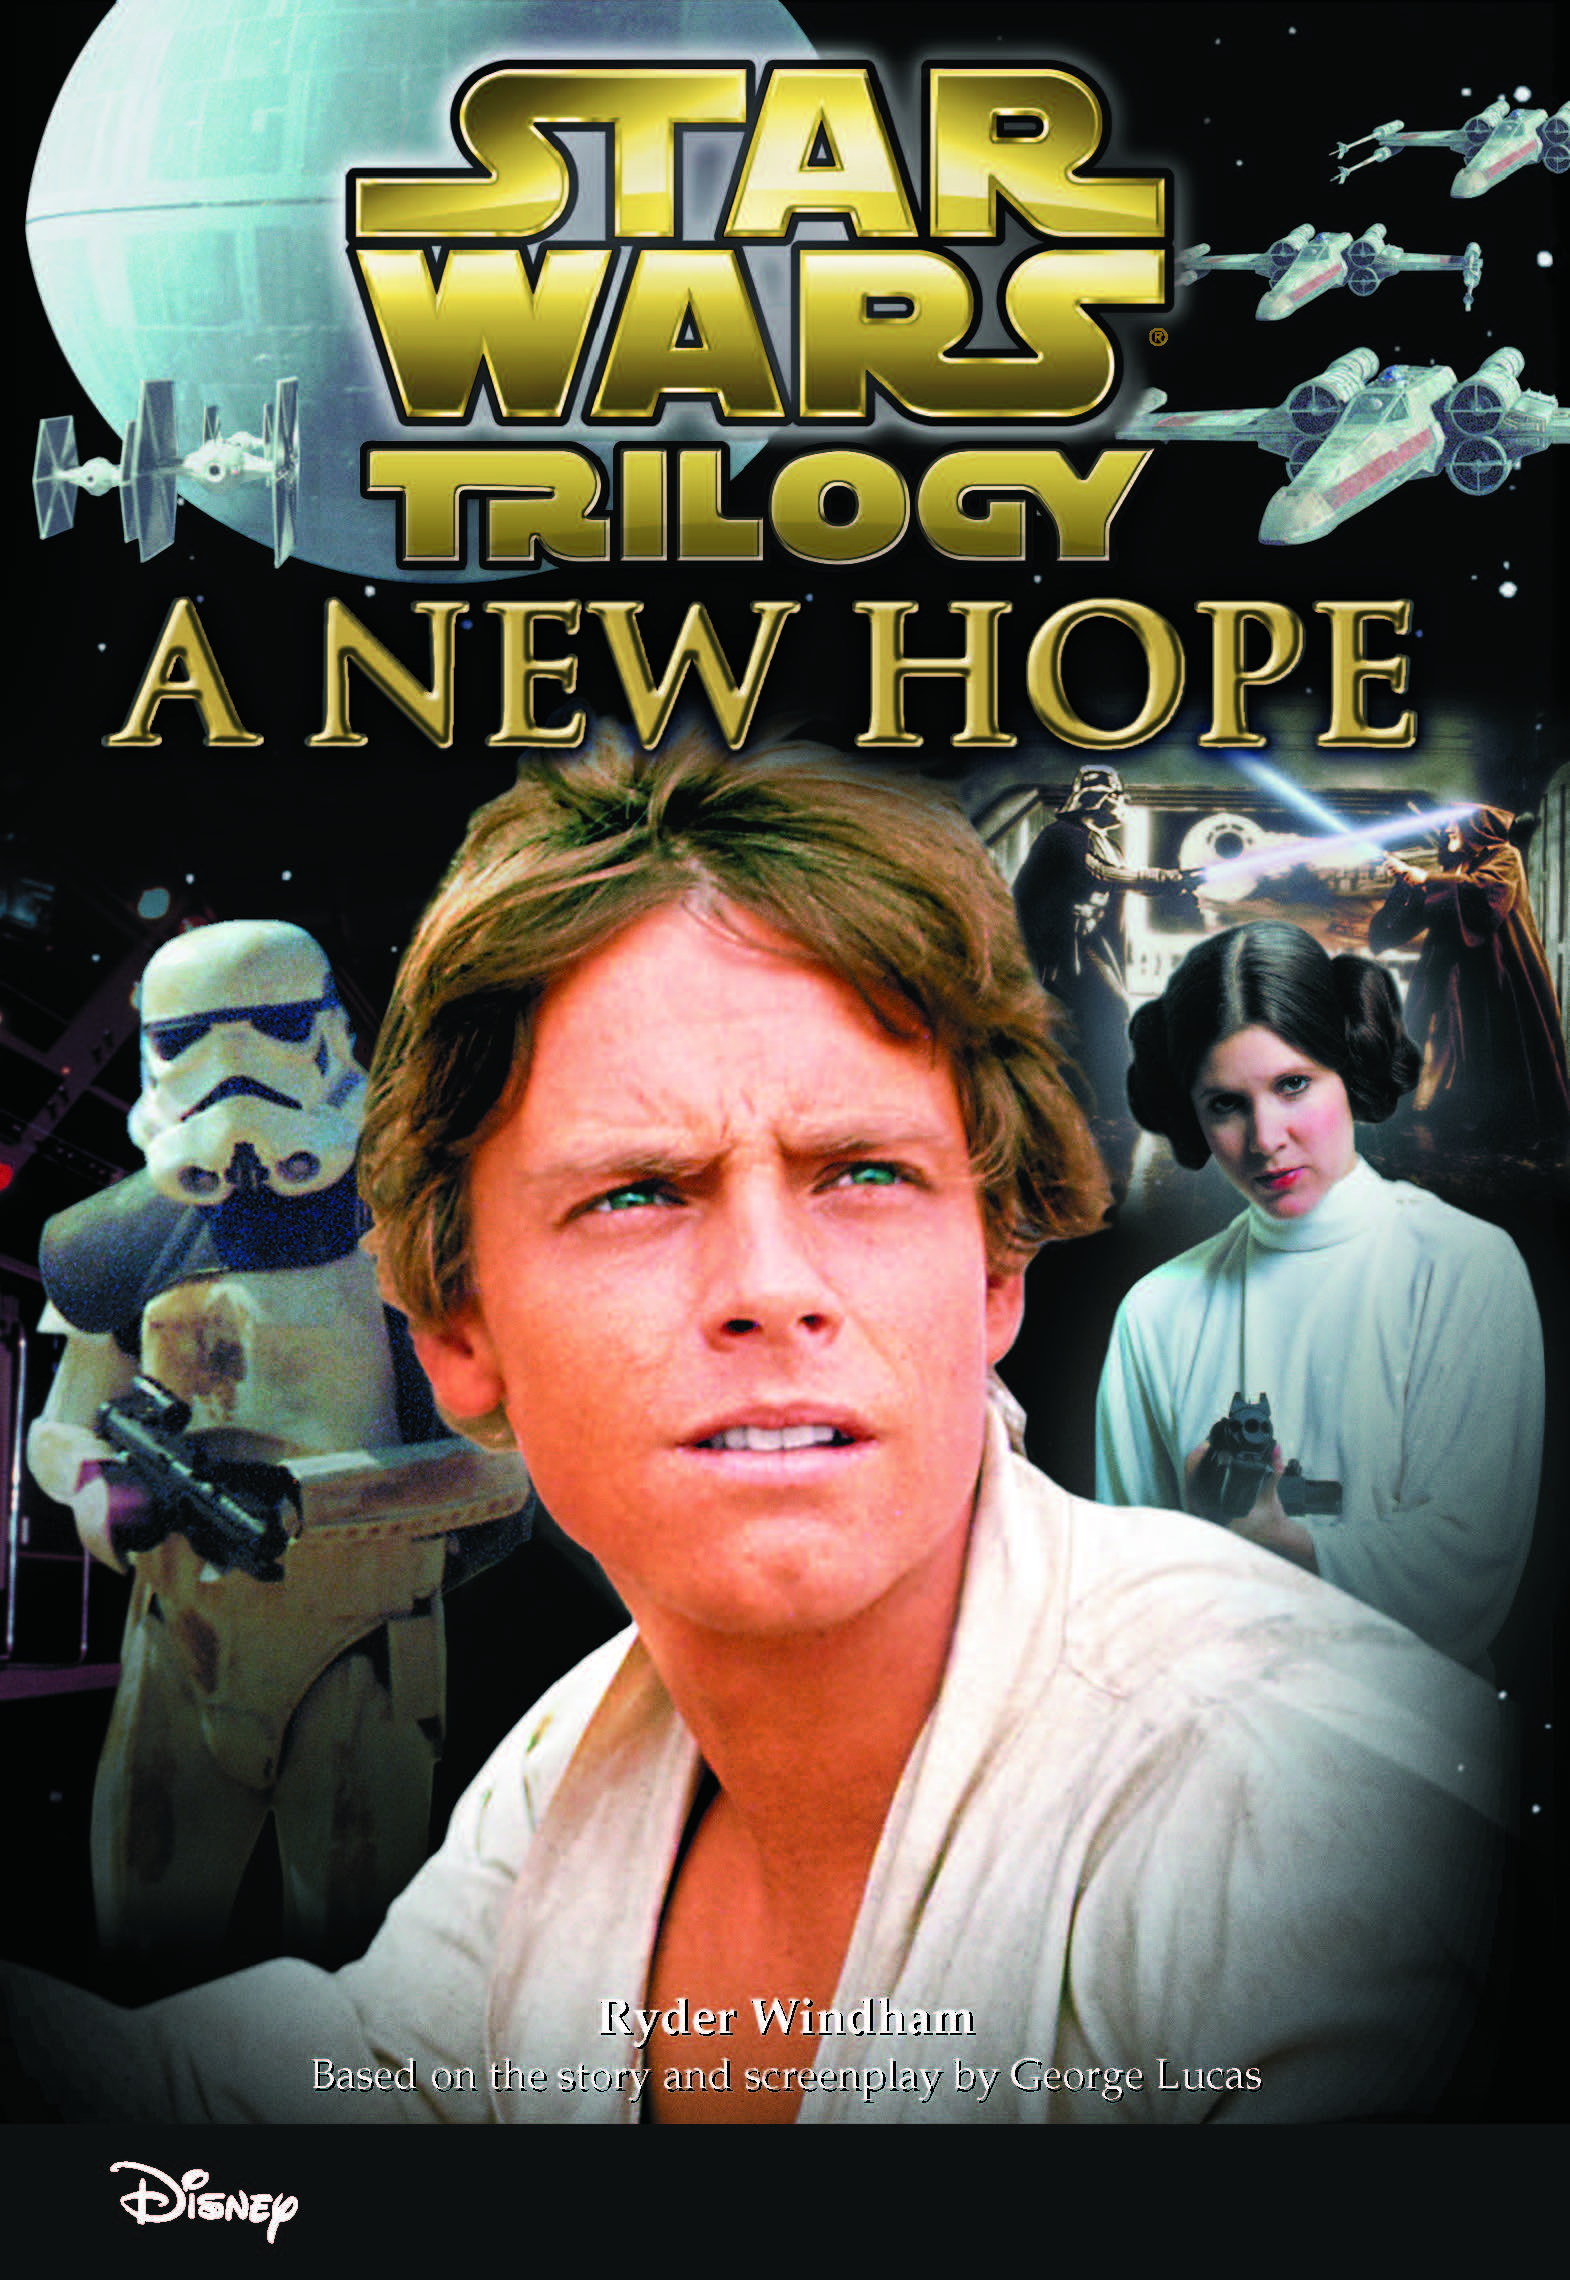 Star wars a new hope release date in Australia